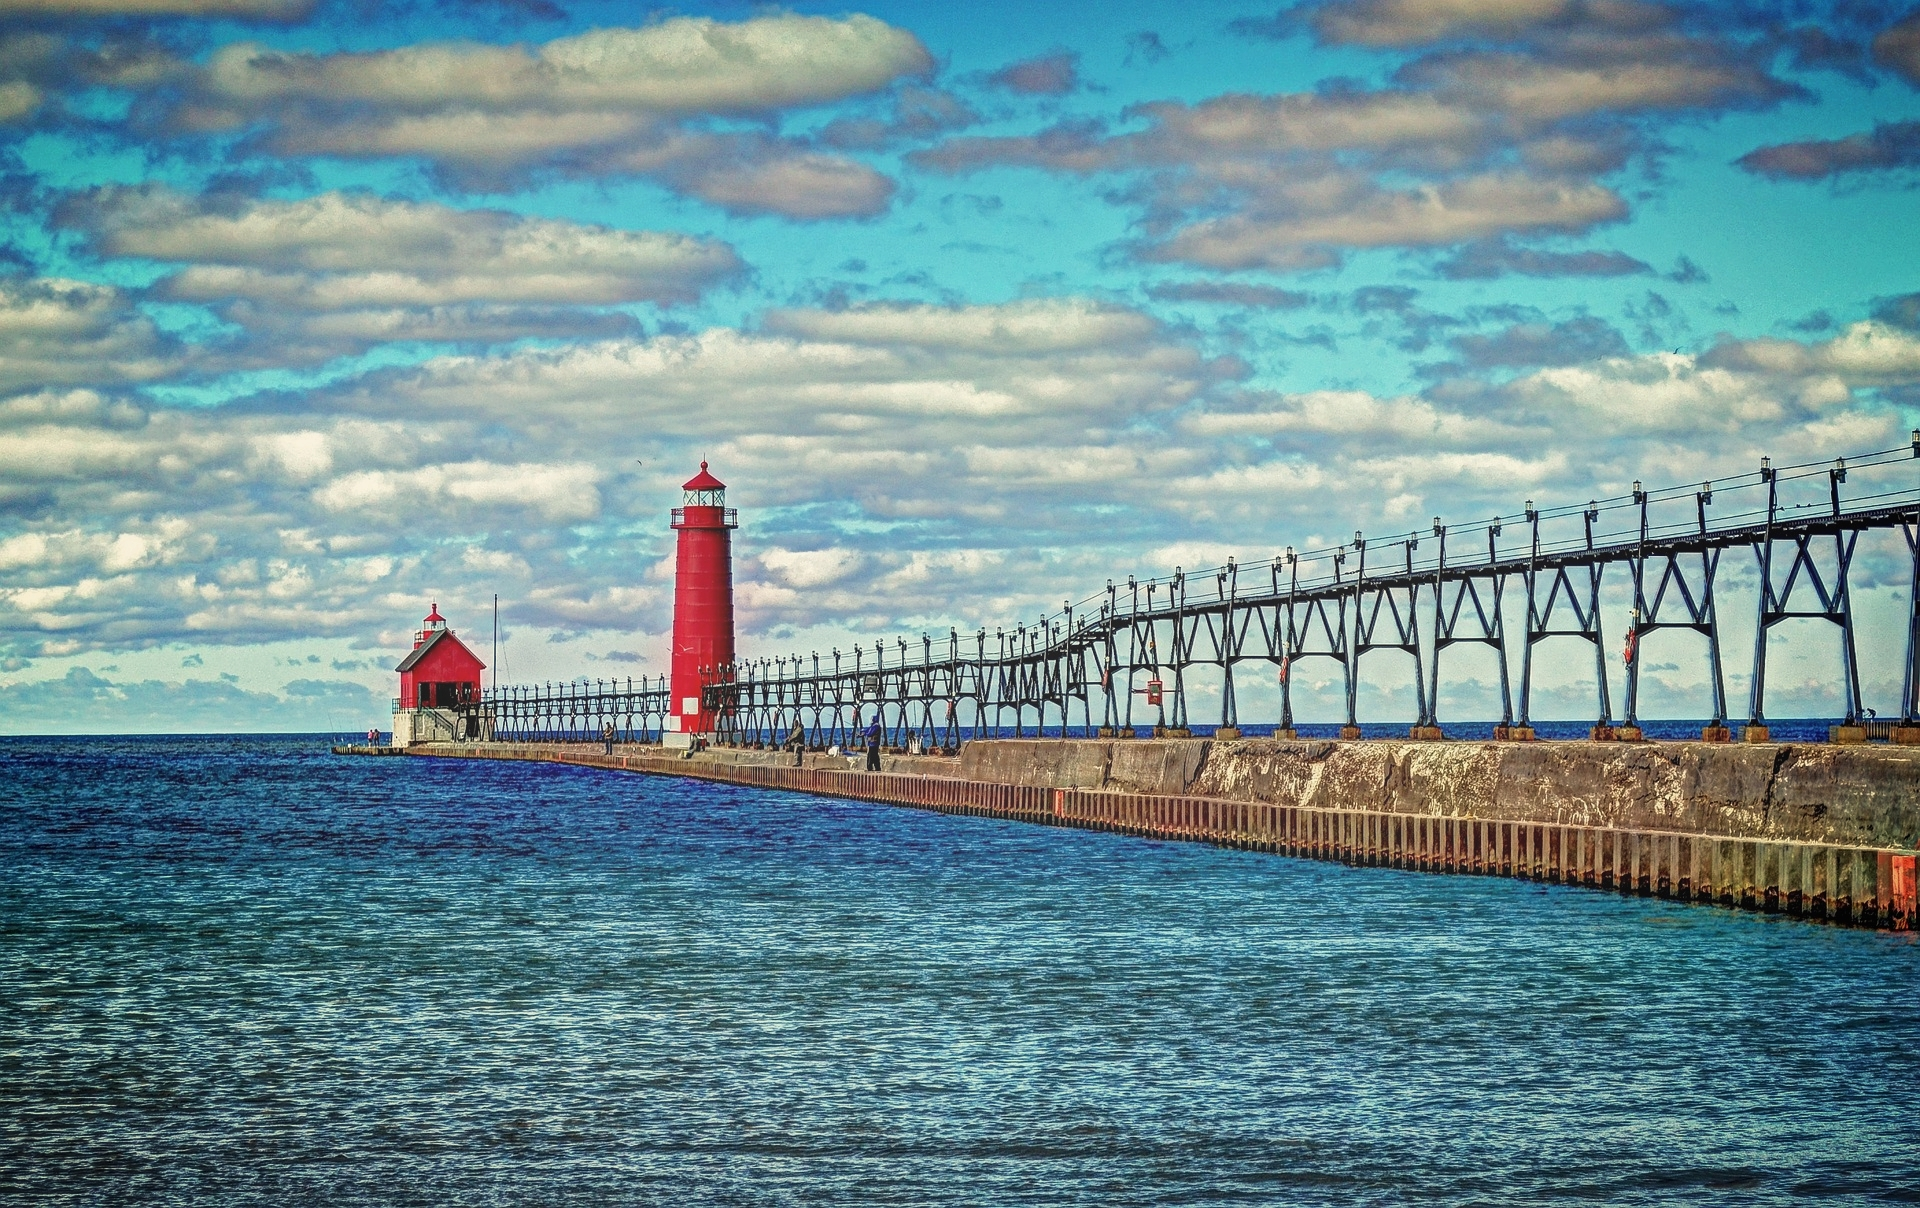 Lakeshore Baptist Churches seeking to serve in the Grand Haven Community